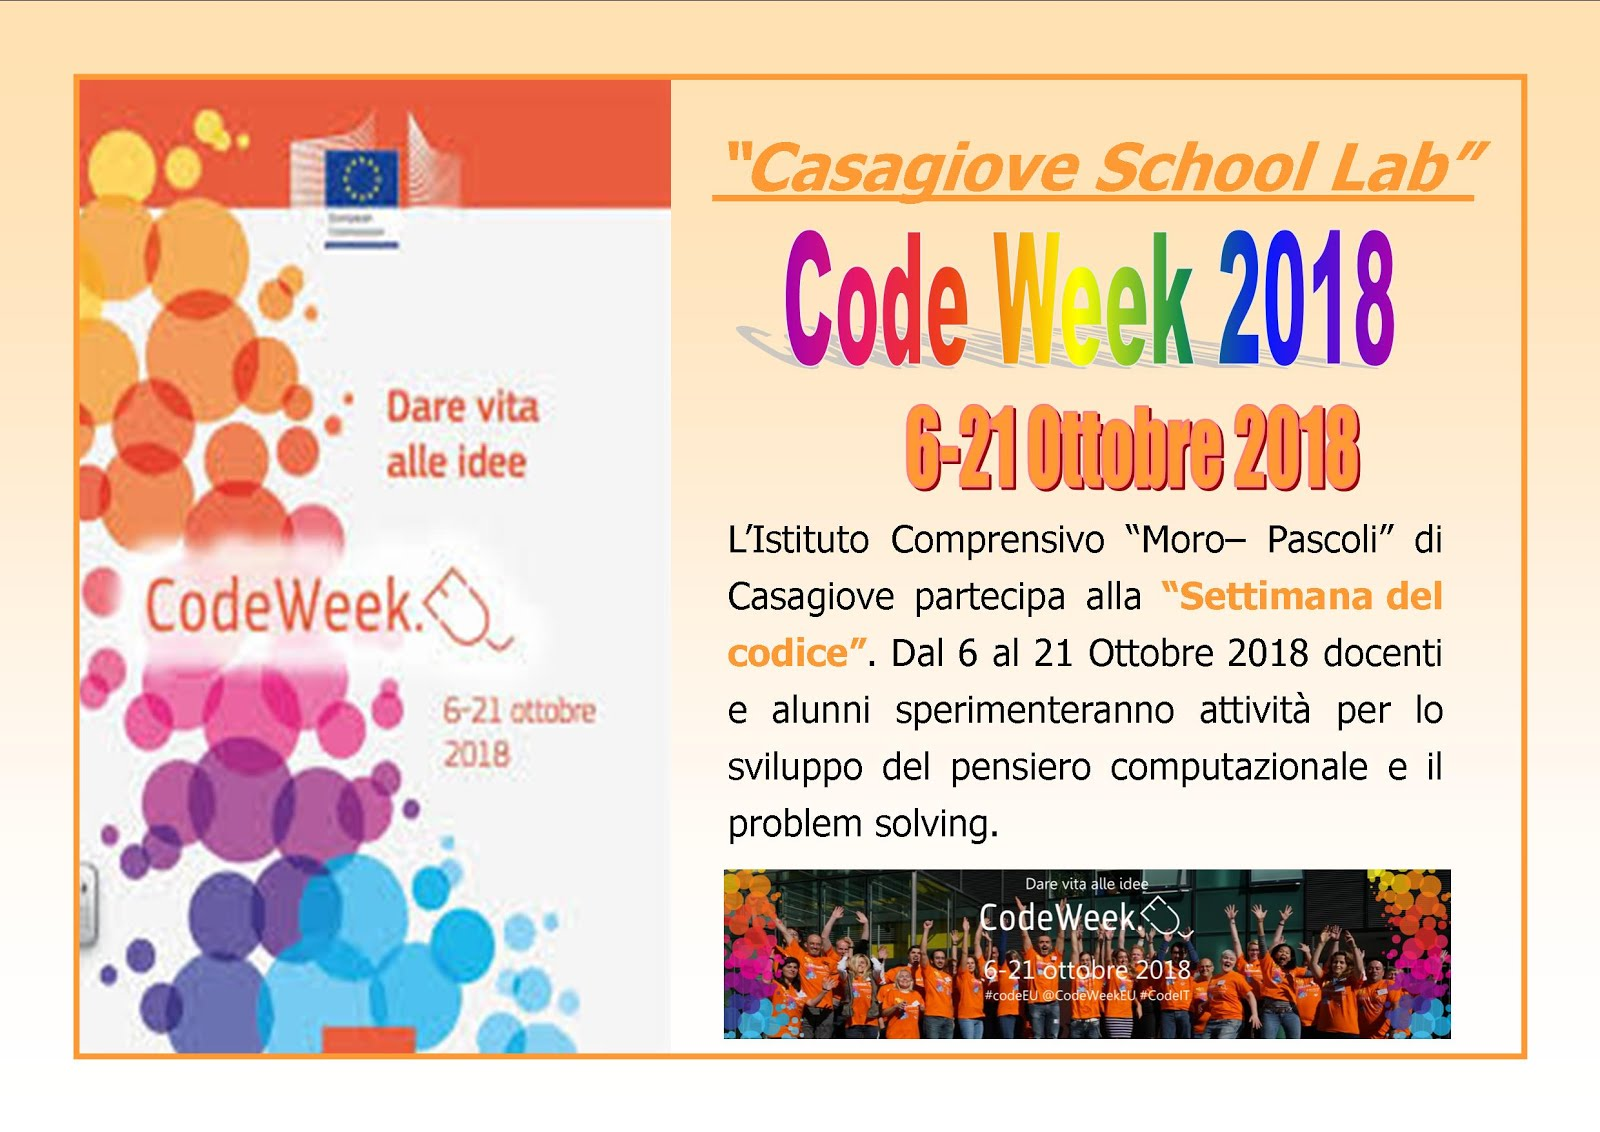 Casagiove School Lab- Codeweek 2018